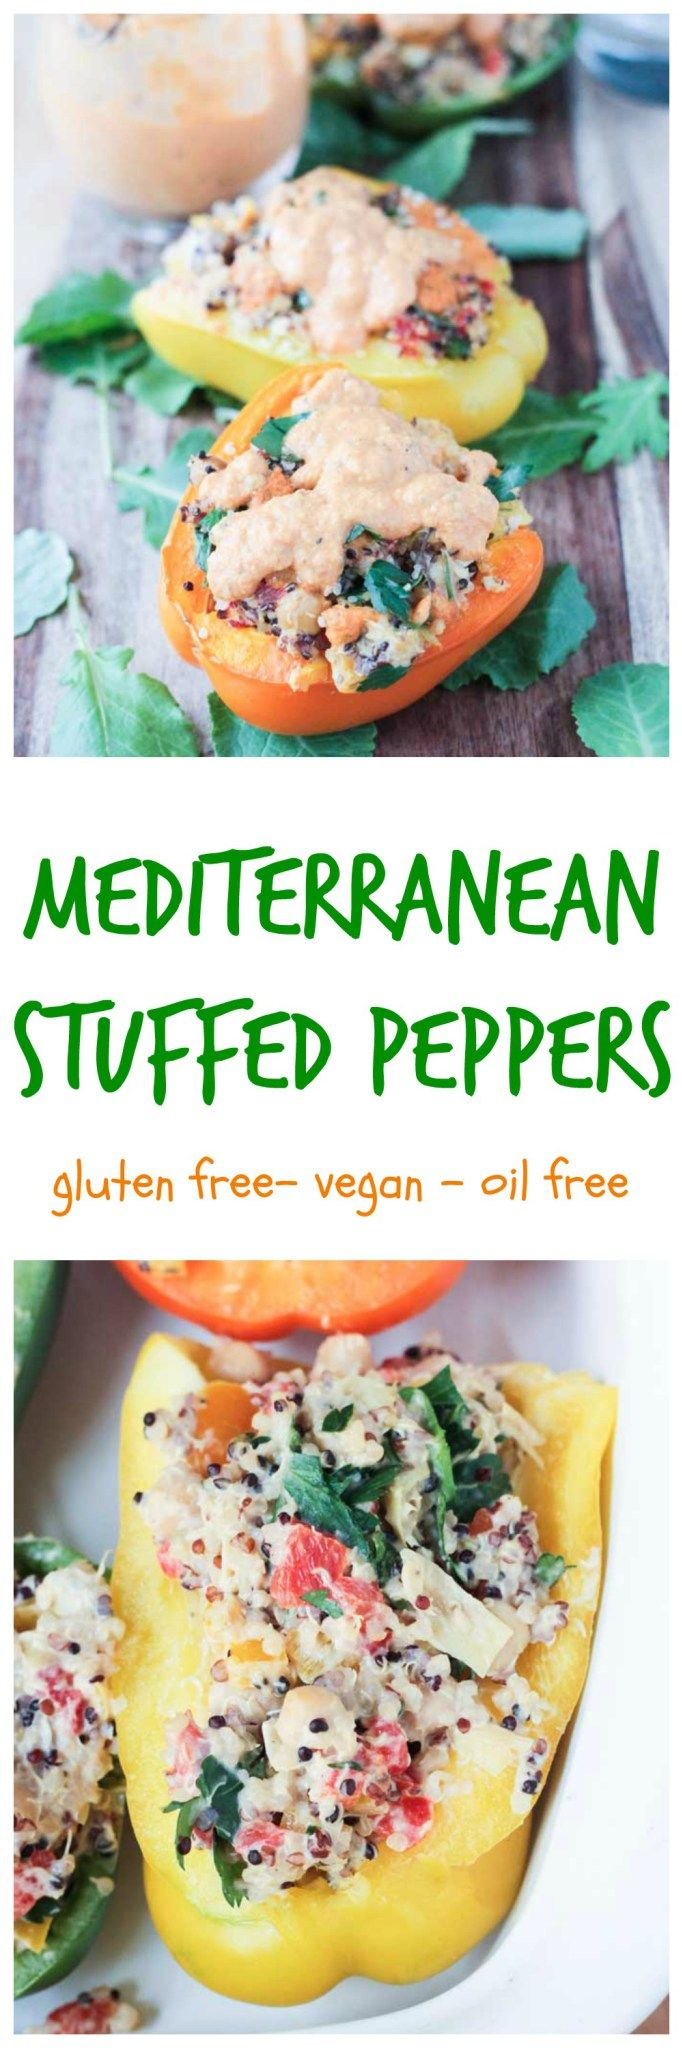 Mediterranean Stuffed Peppers -fresh and bright with the flavors of the mediterranean. A lightened up yet filling dinner that's perfect for spring!